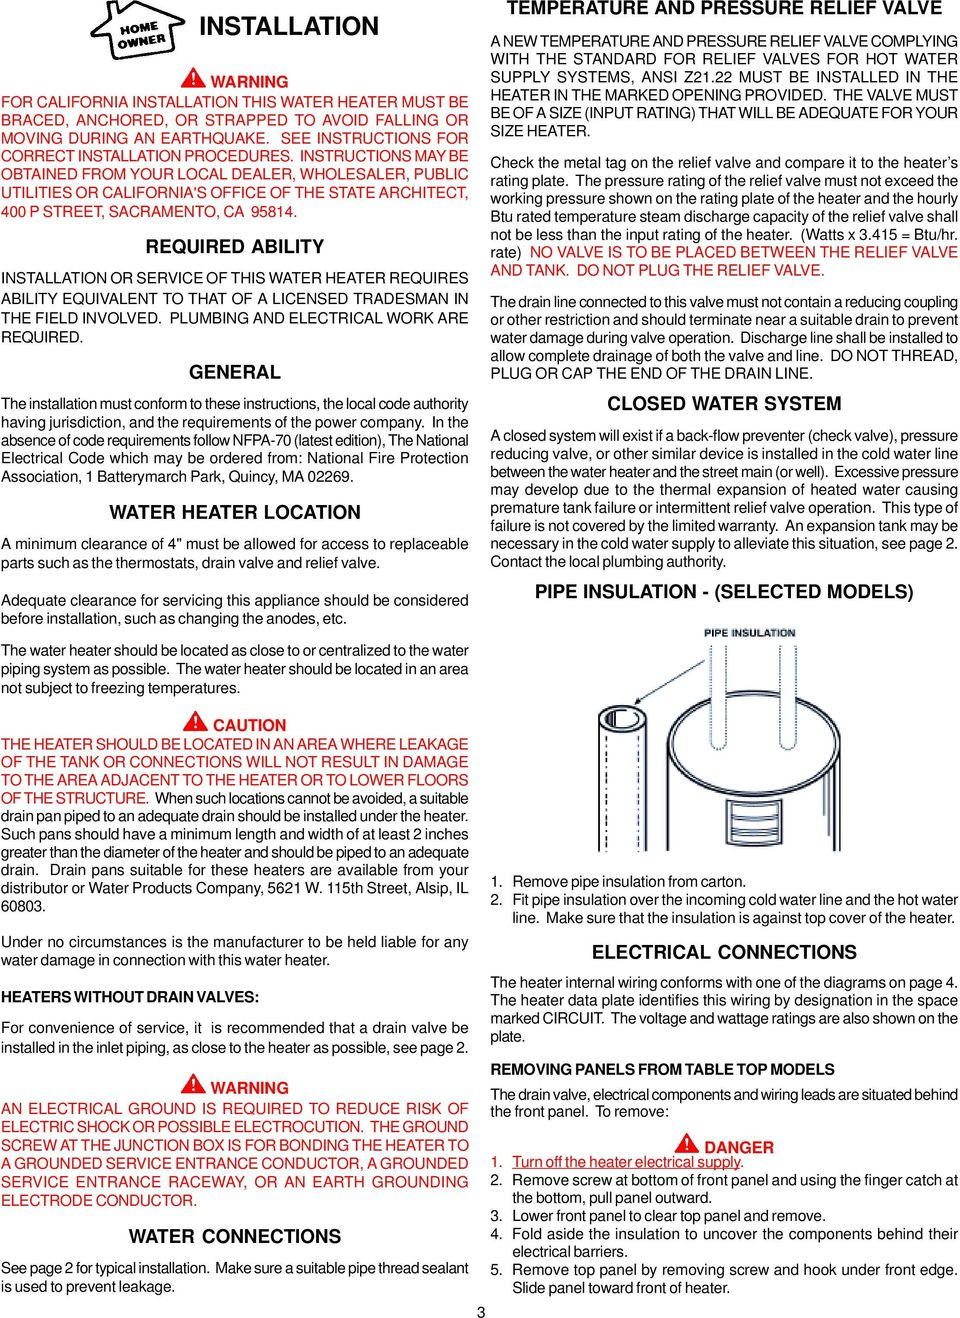 Attractive Piping Diagram Component - Wiring Diagram Ideas ...